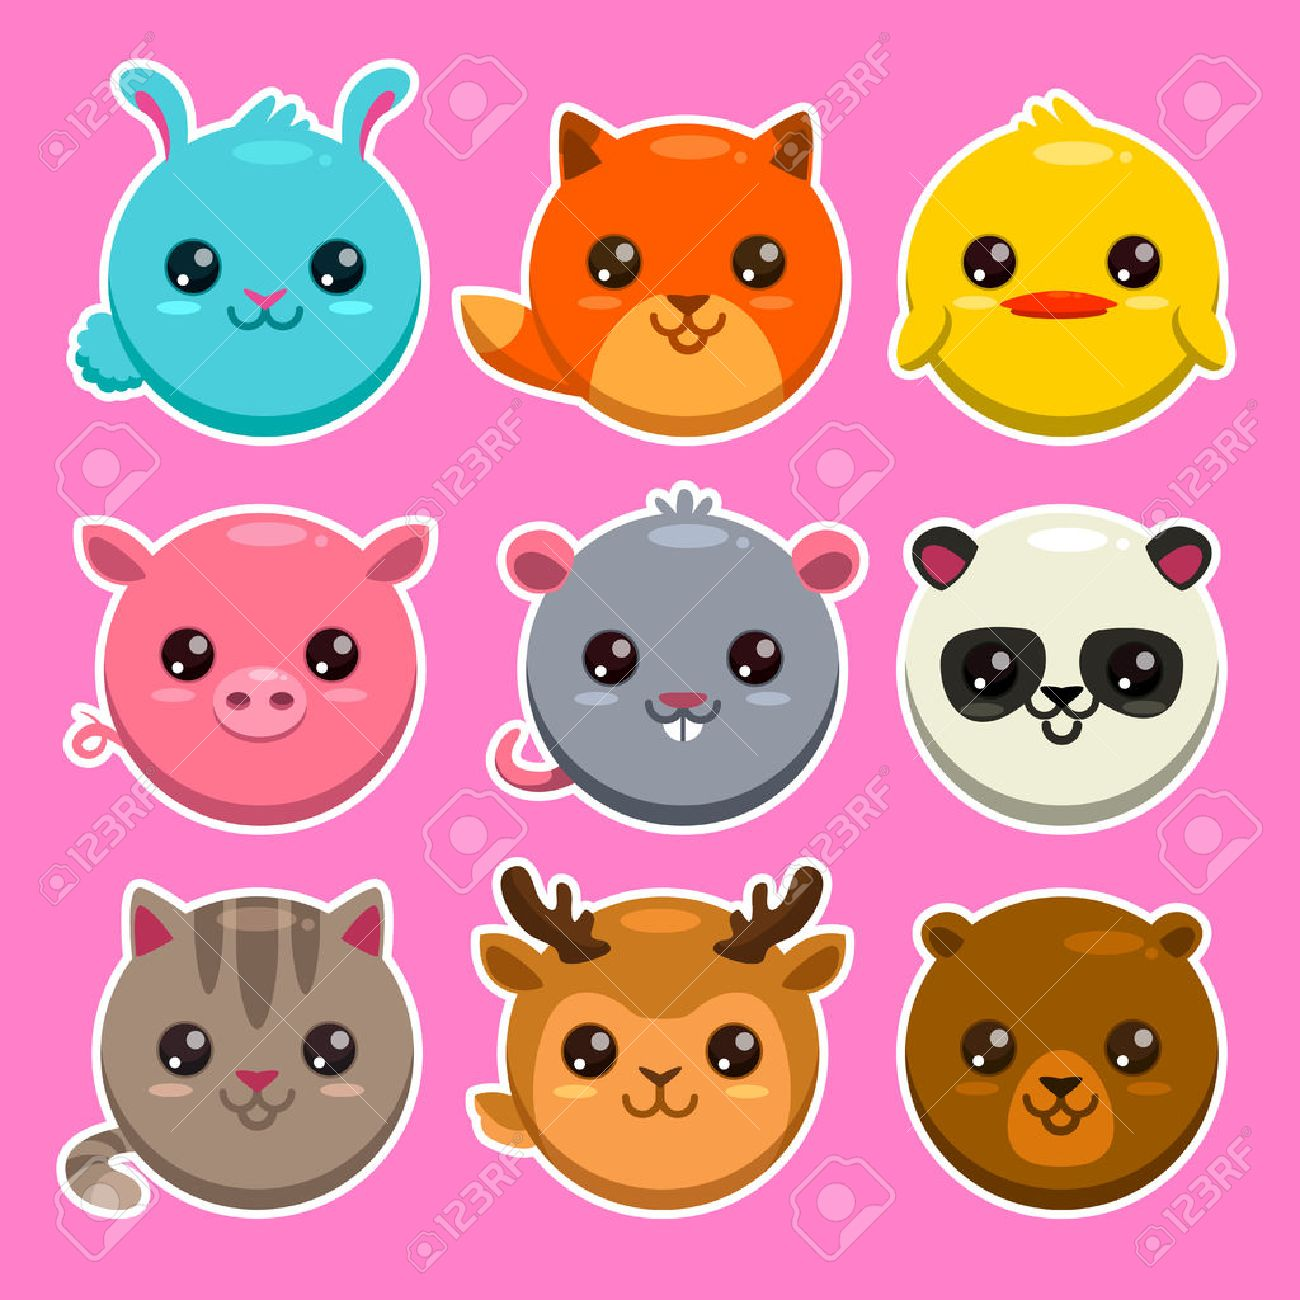 Cute Round Set Of Cute Cartoon Round Animals Vector Zoo Stickers Stock Vector 42515116 123rfcom Set Of Cute Cartoon Round Animals Vector Zoo Stickers Royalty Free